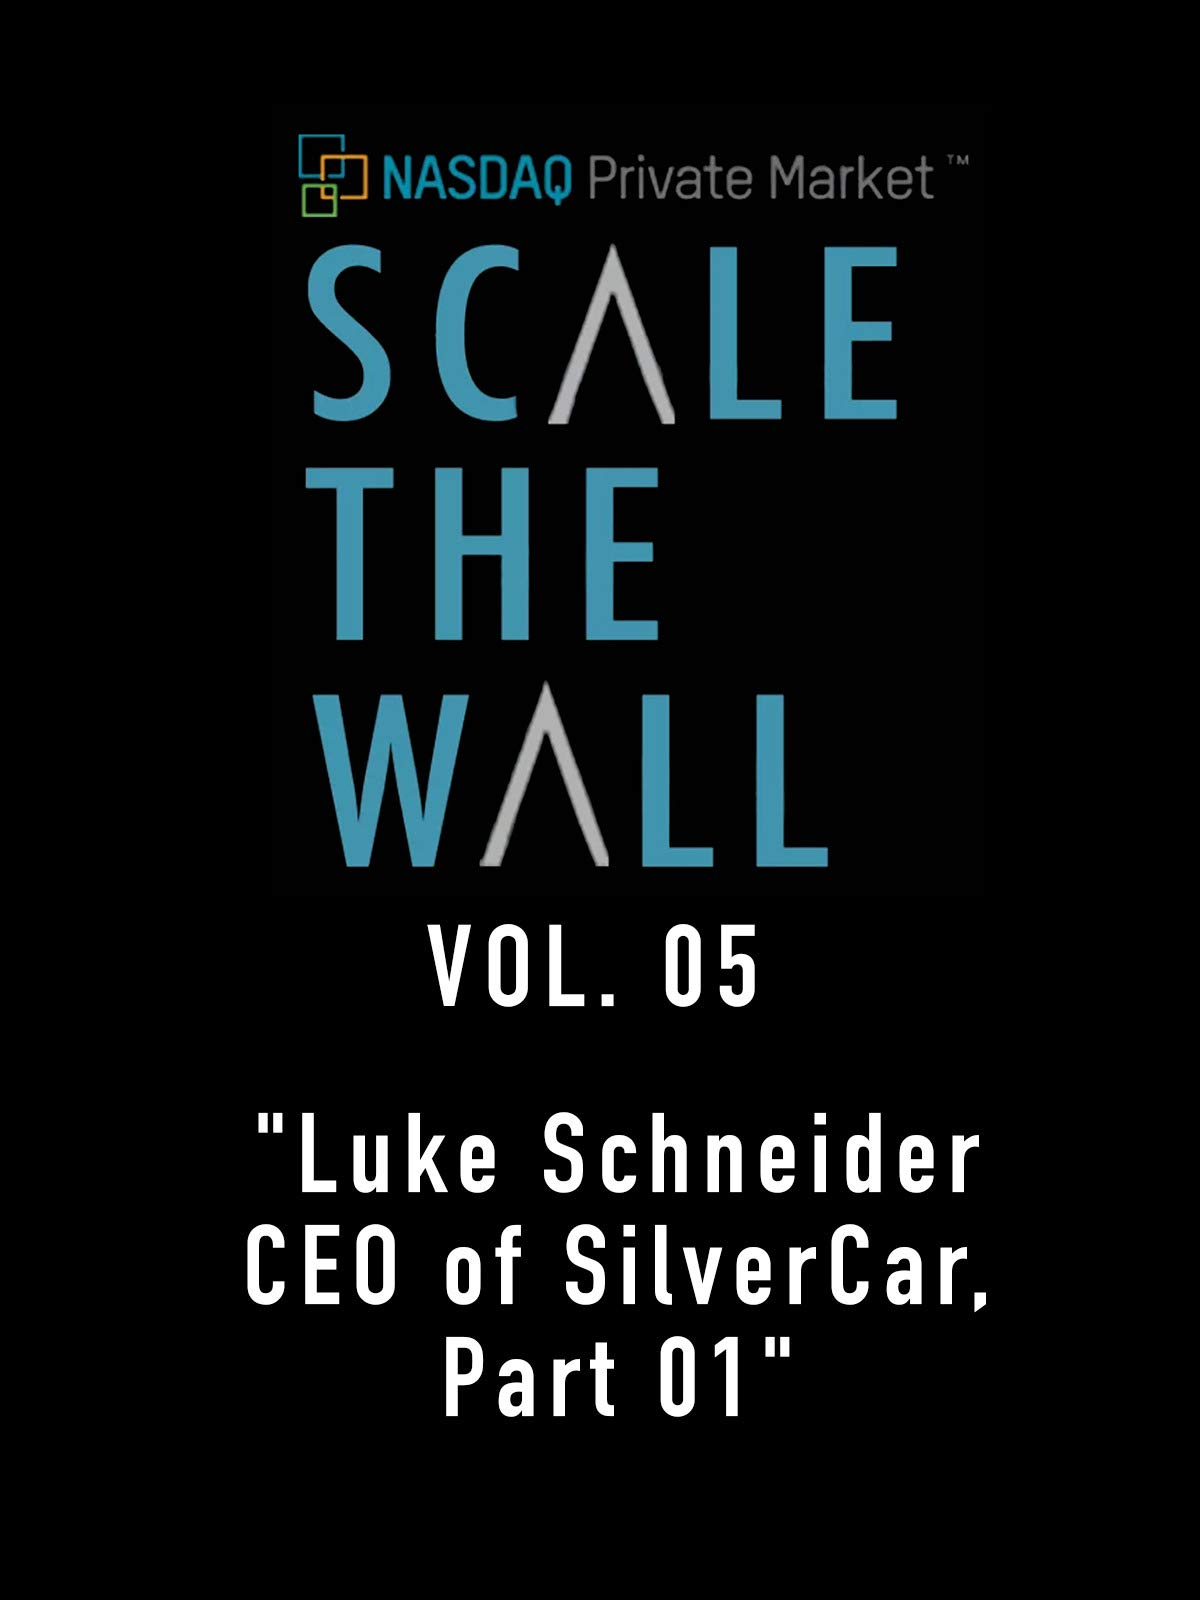 Scale the Wall Vol. 05